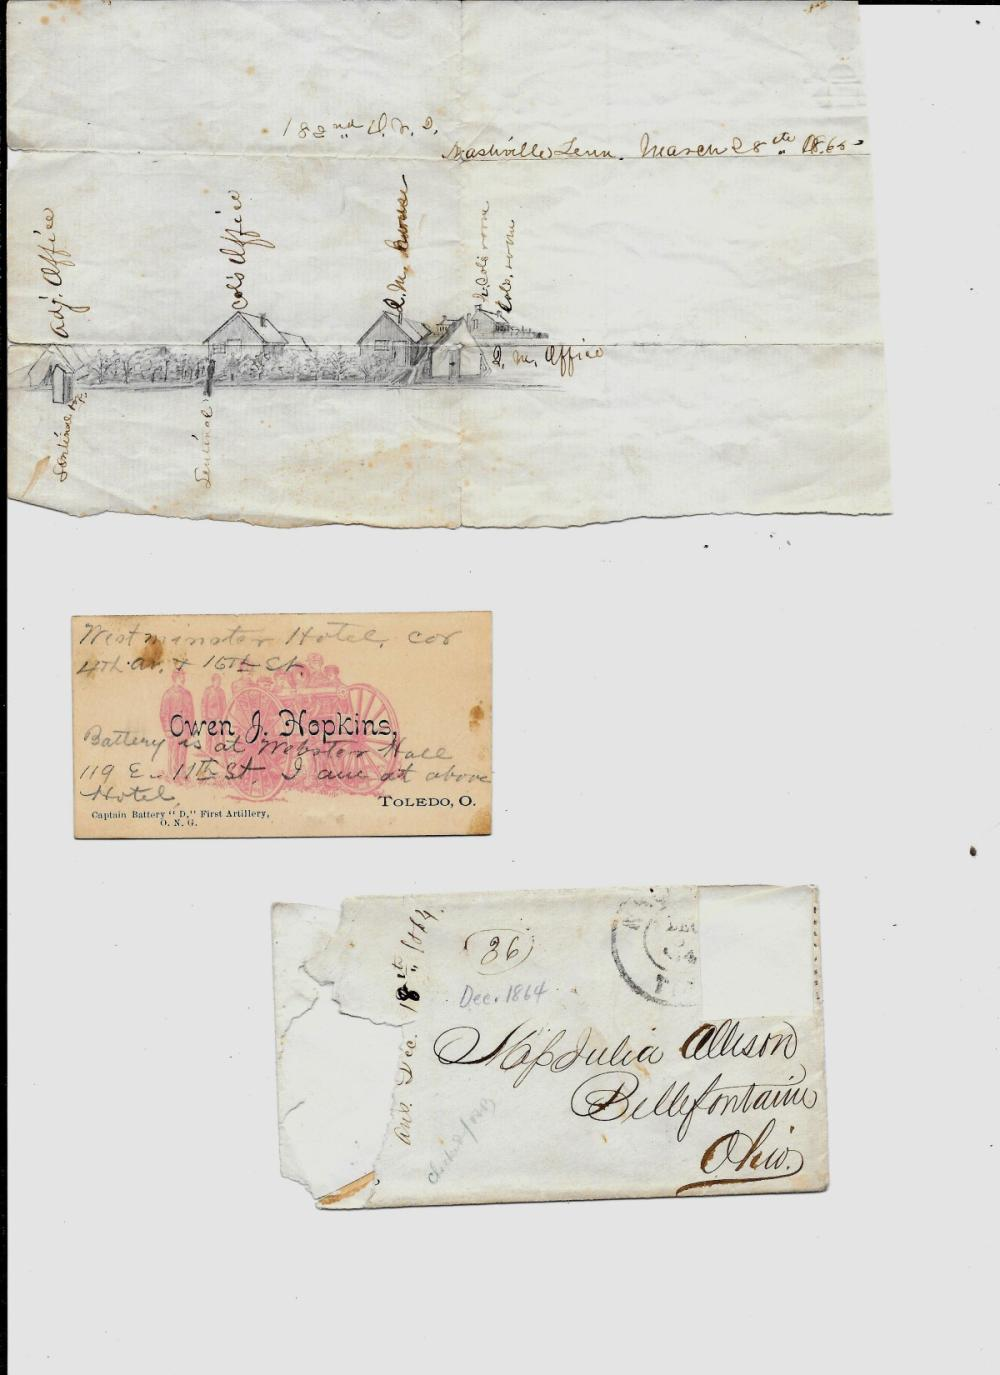 Pair of documents of the 182nd Ohio National Guard